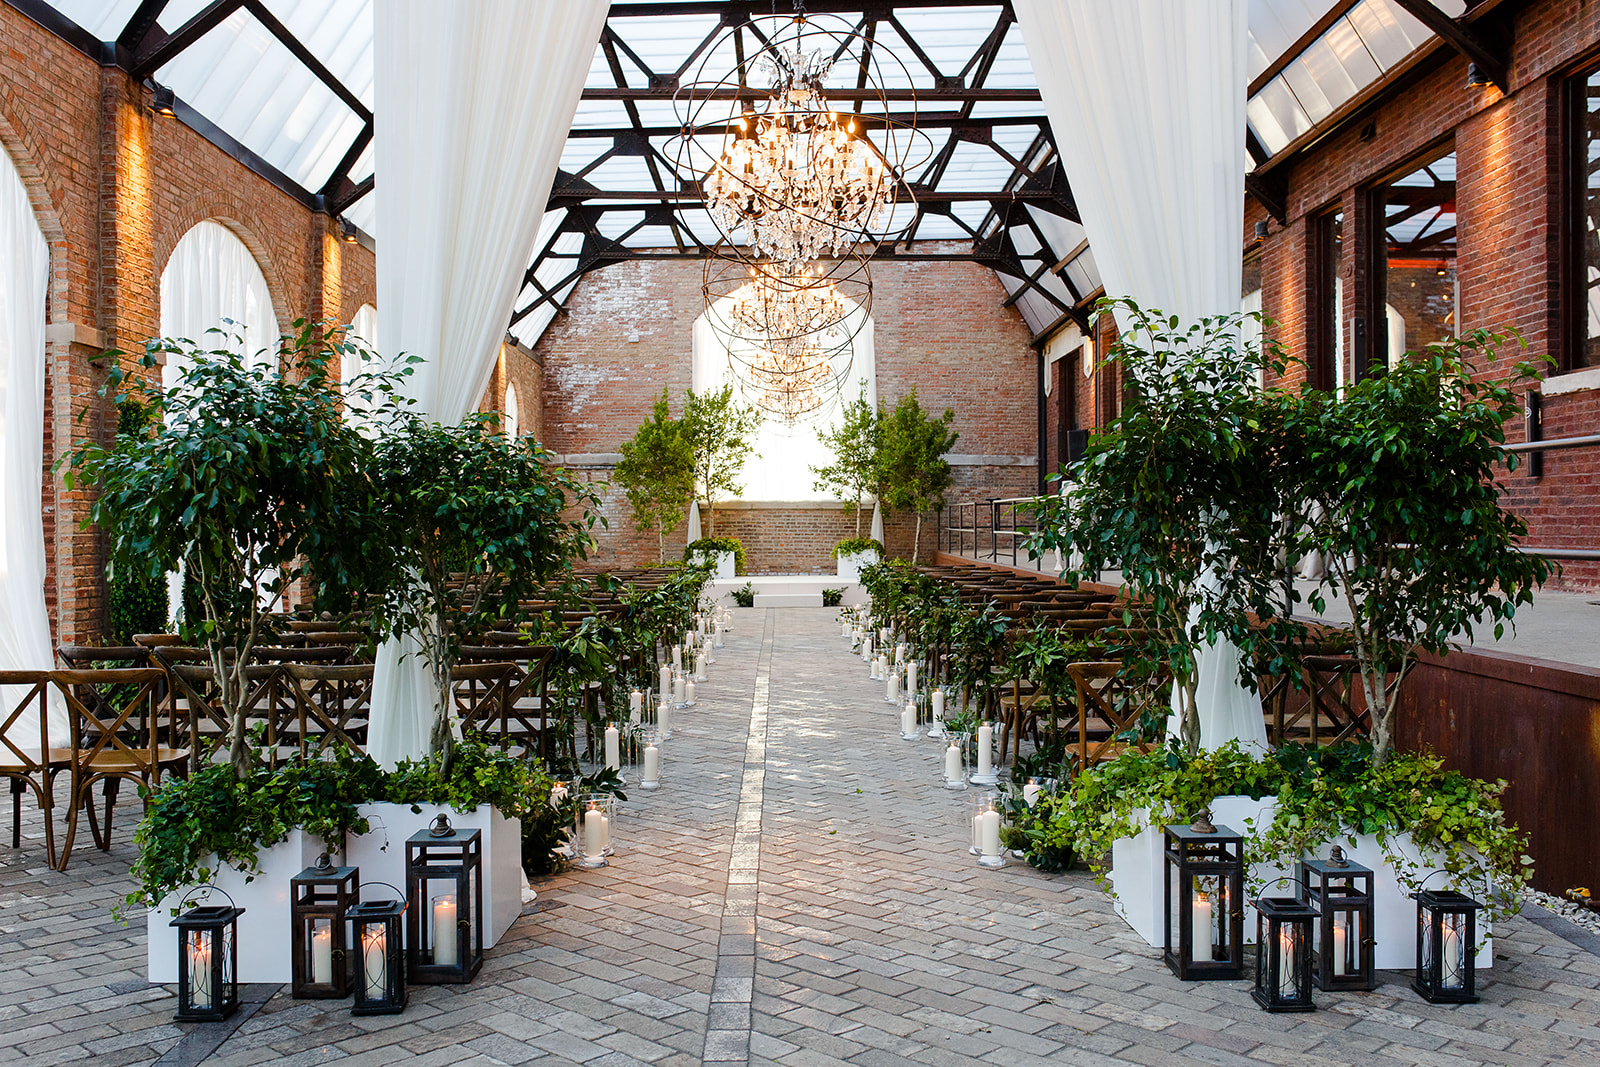 We love the lush green decor and draping that Kehoe Designs created for the Sculpture Garden ceremony.